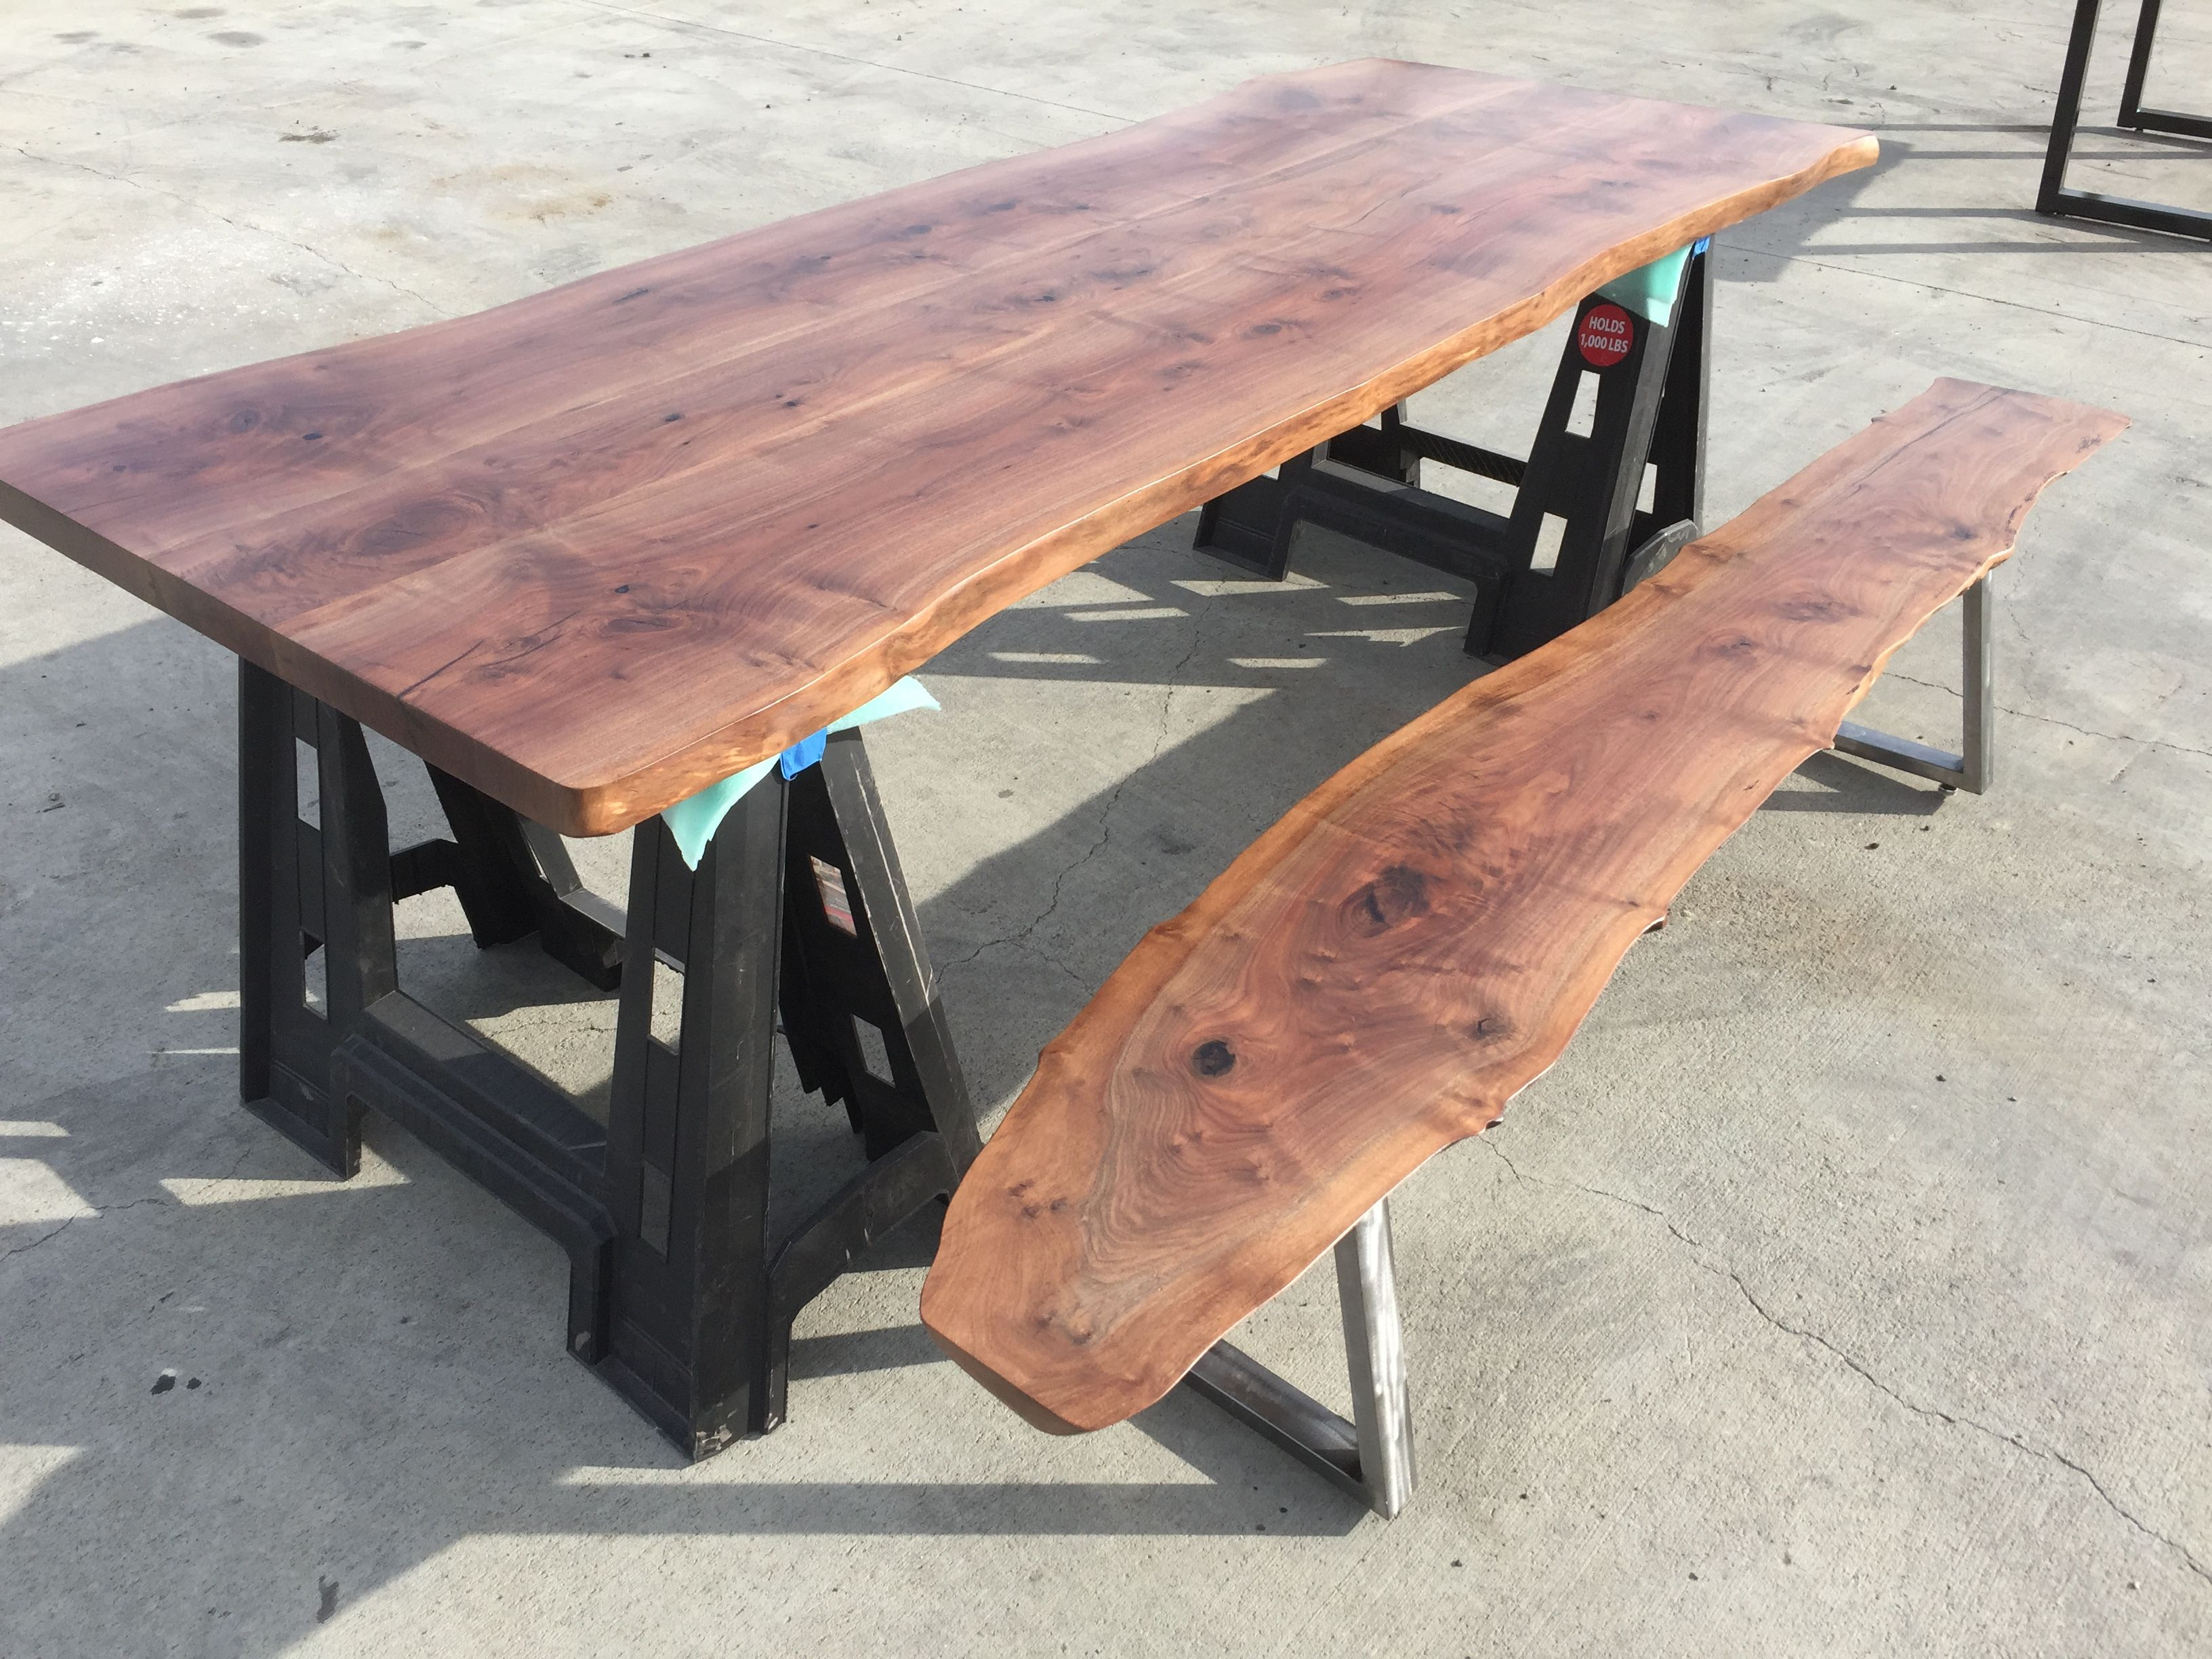 d9f4bb69851be1728552c49b9e093db4 Top Result 50 Lovely Redwood Coffee Table Photos 2017 Hgd6